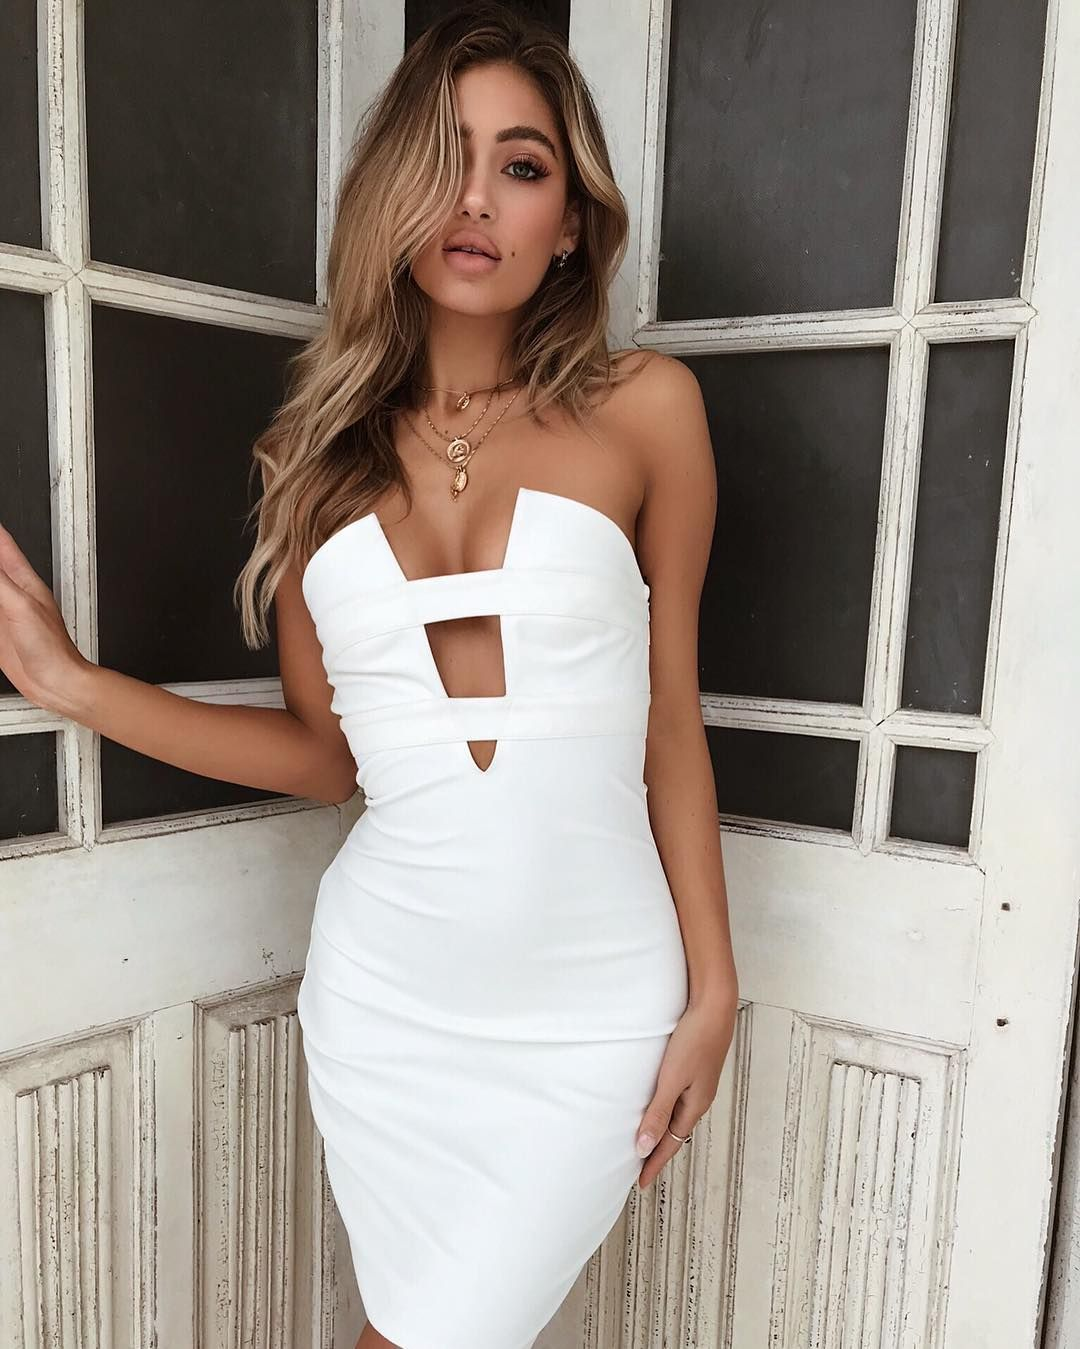 How Hot Is The Nadia Dress Strapless Party Dress Strapless Dress Bodycon Dress [ 1349 x 1080 Pixel ]